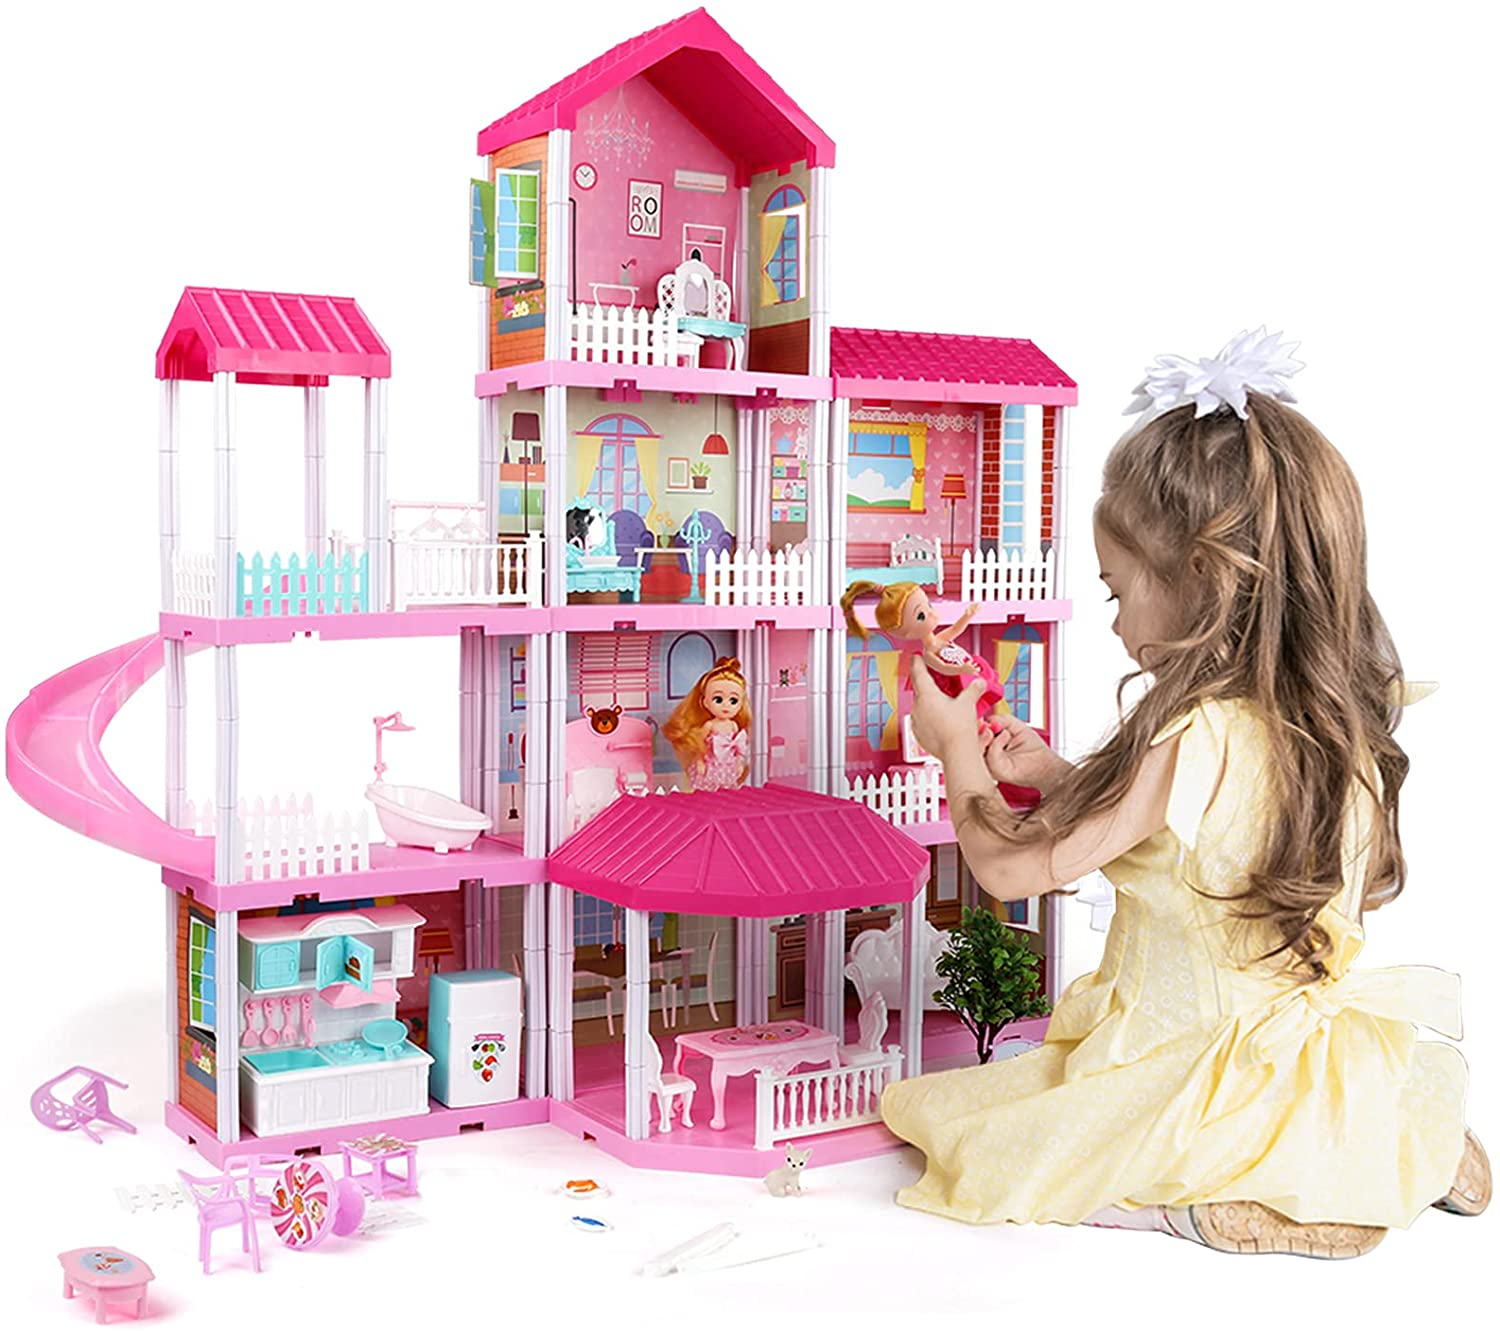 House with Doll Toy Figures for $79.99 (Reg $99.99)